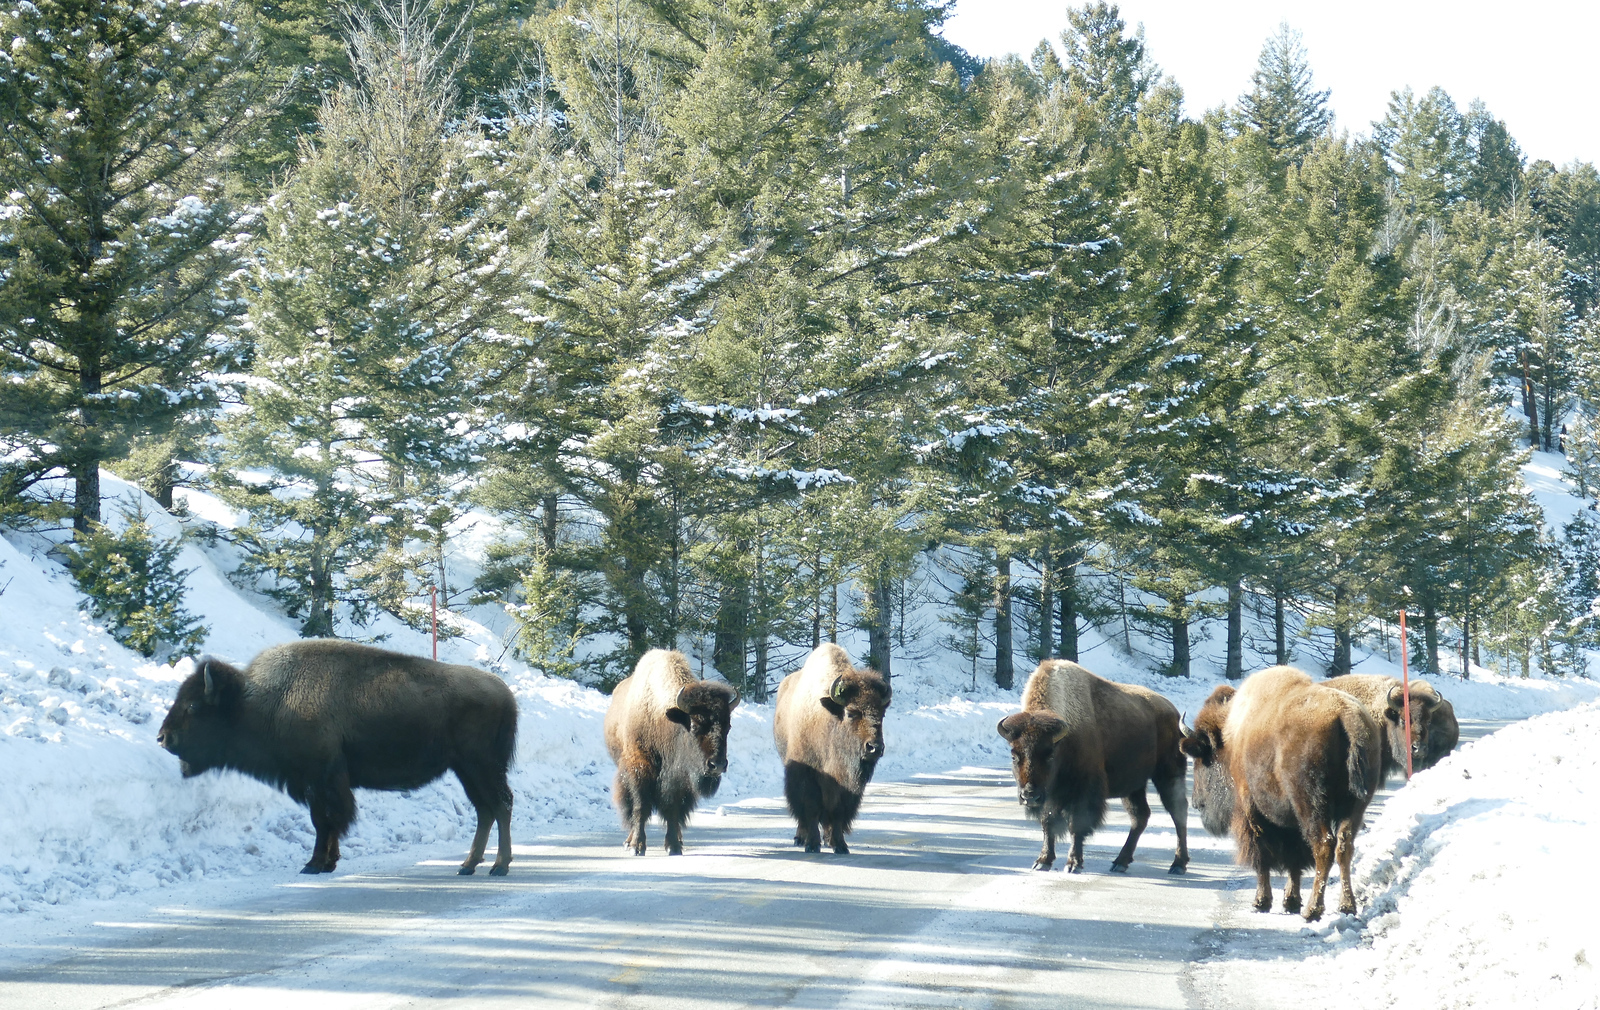 You're sure to see bison on a snow-covered road when visiting Yellowstone in winter.